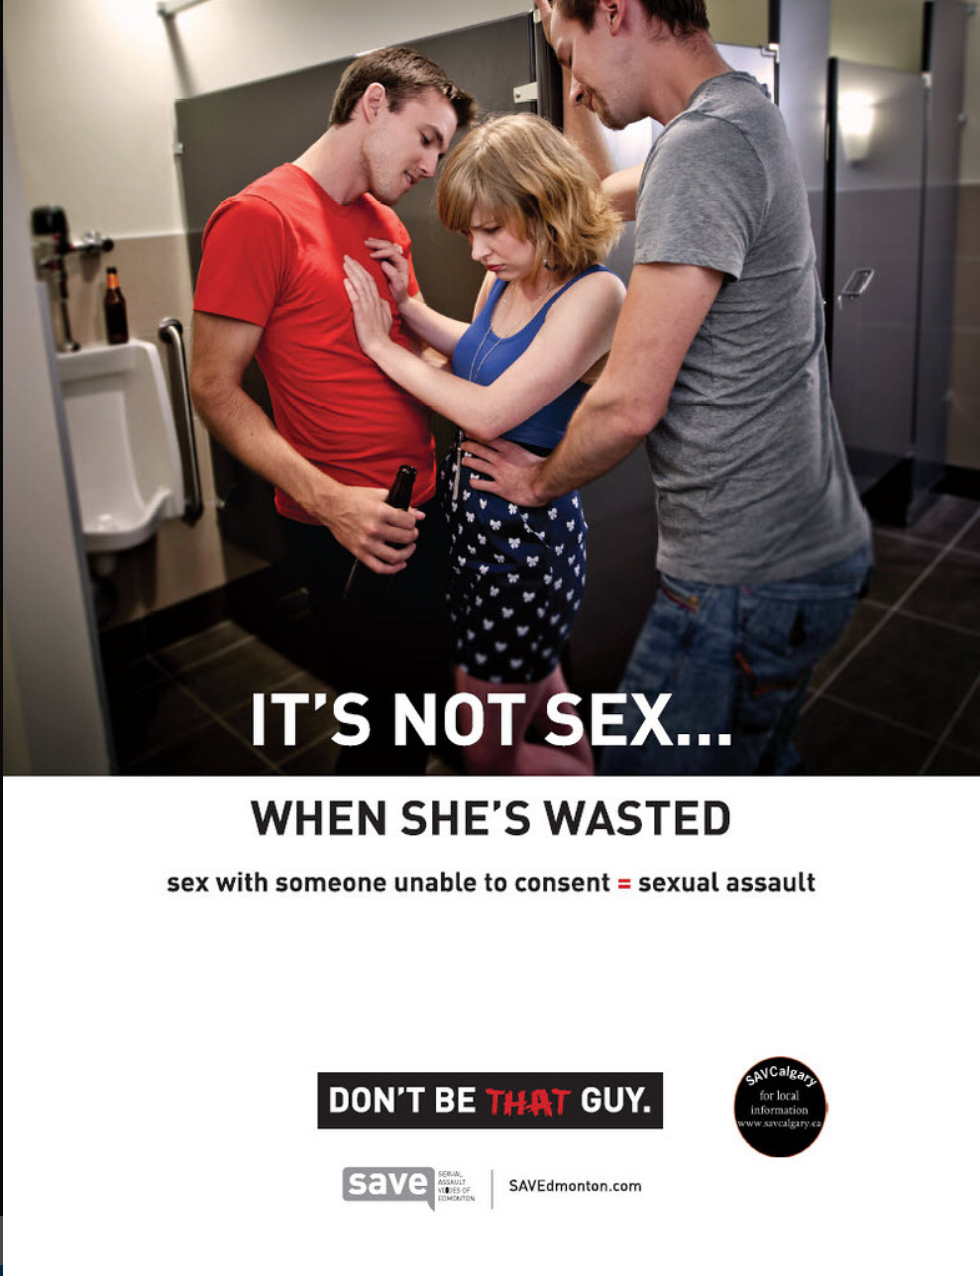 It's not sex - when she's wasted